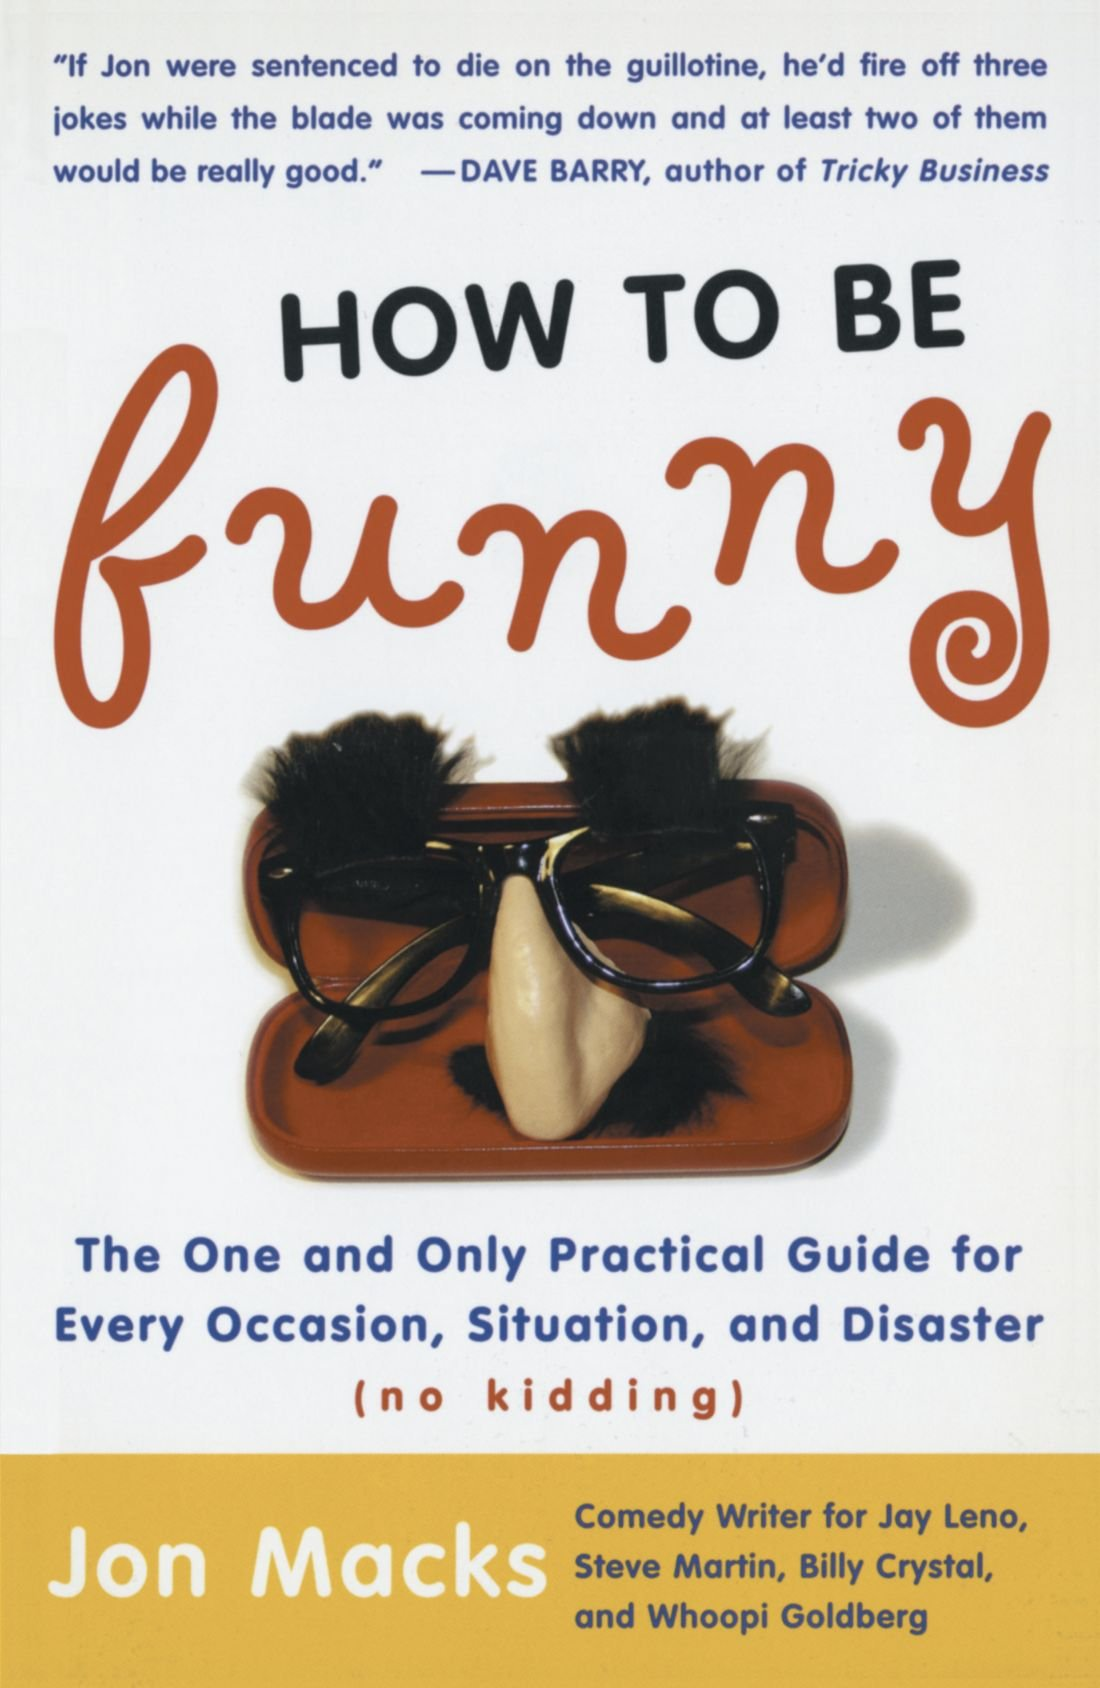 How to develop a sense of humor and learn to joke